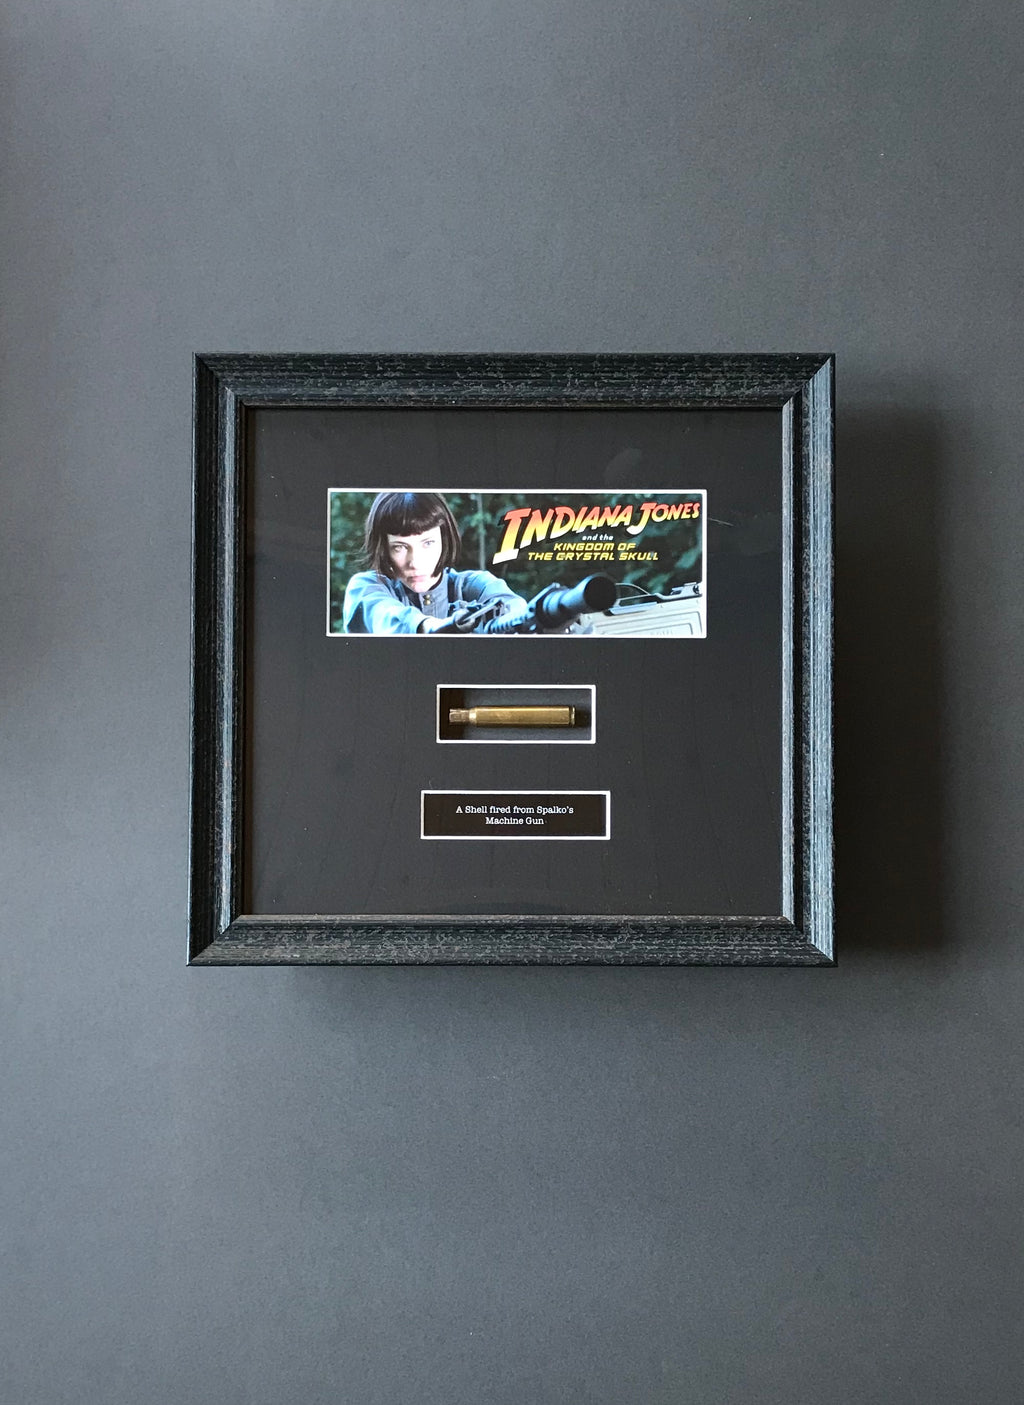 Indiana Jones & the Kingdom of the Crystal Skull (2008) - A Framed Shell fired from Spalko's Machine Gun (SOLD)